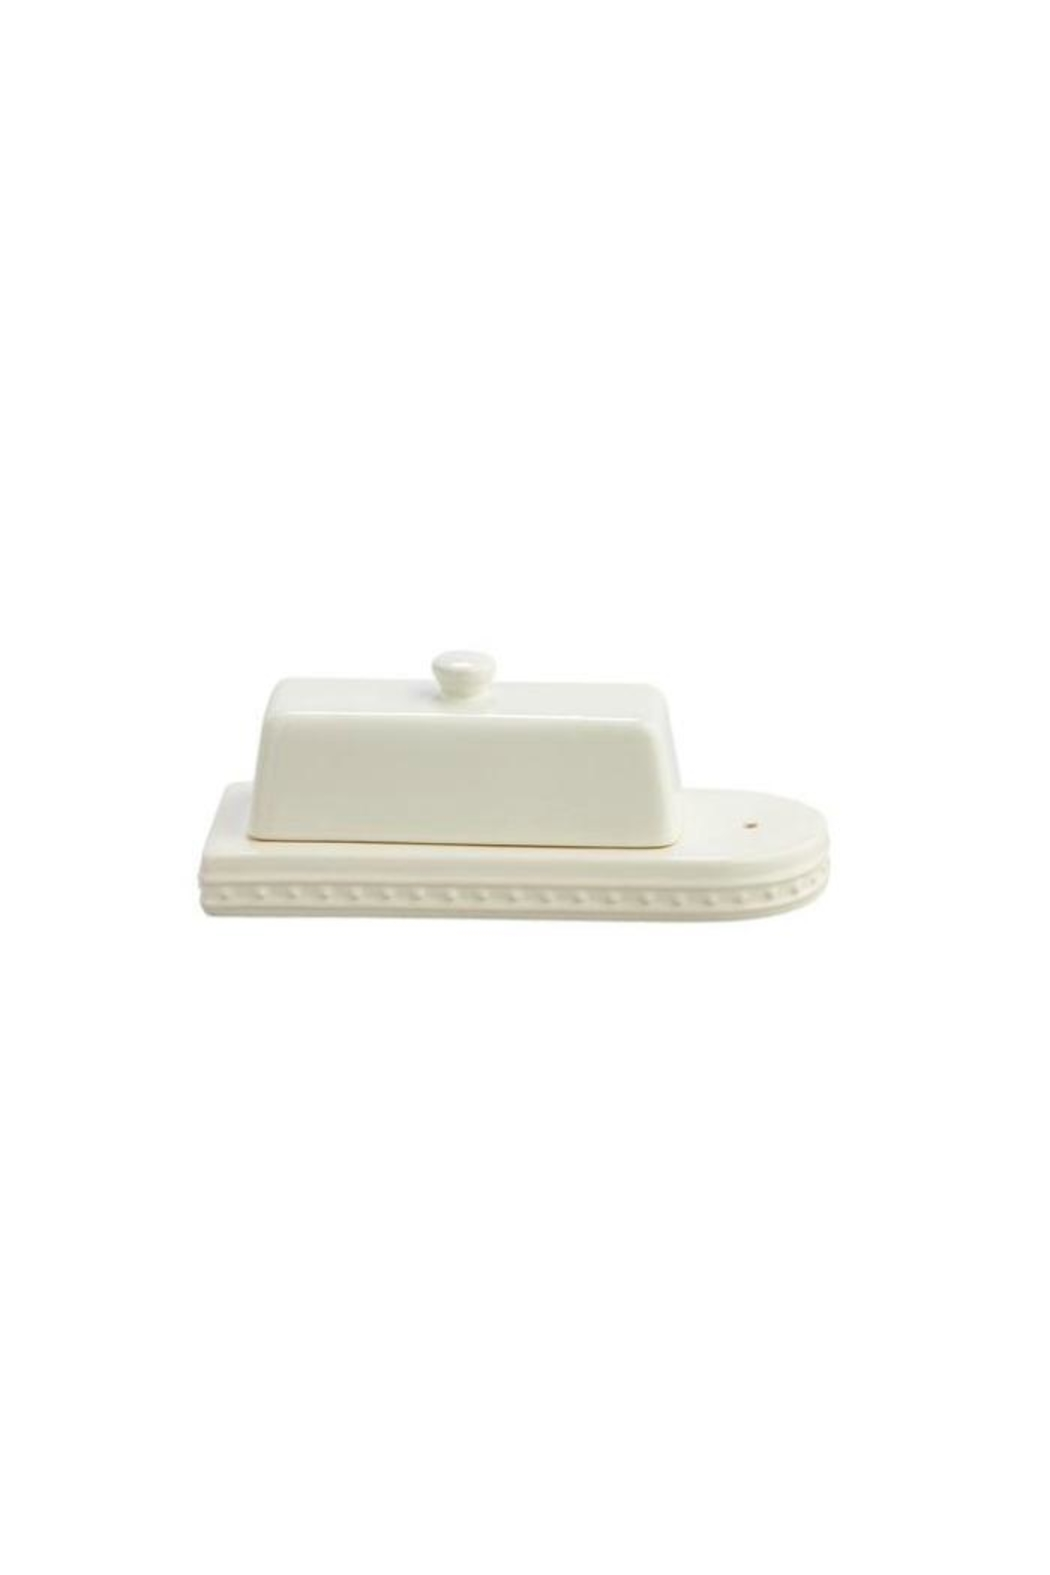 Nora Fleming Butter Dish - Main Image